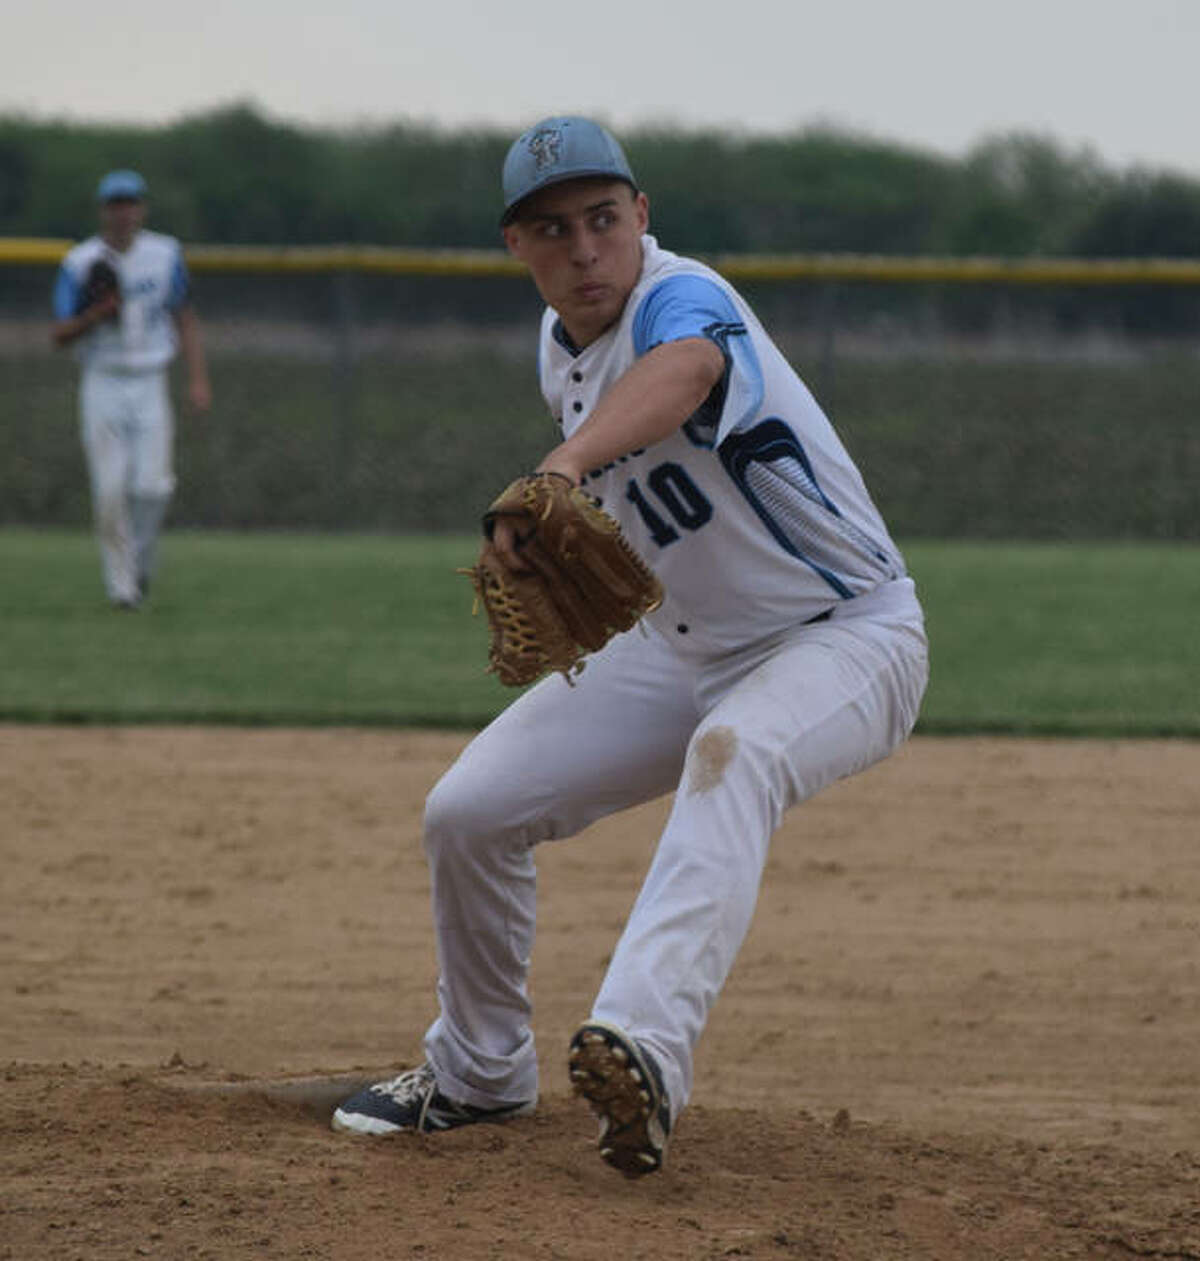 John Shaner (10) delivers a pitch during a game against Camp Point.